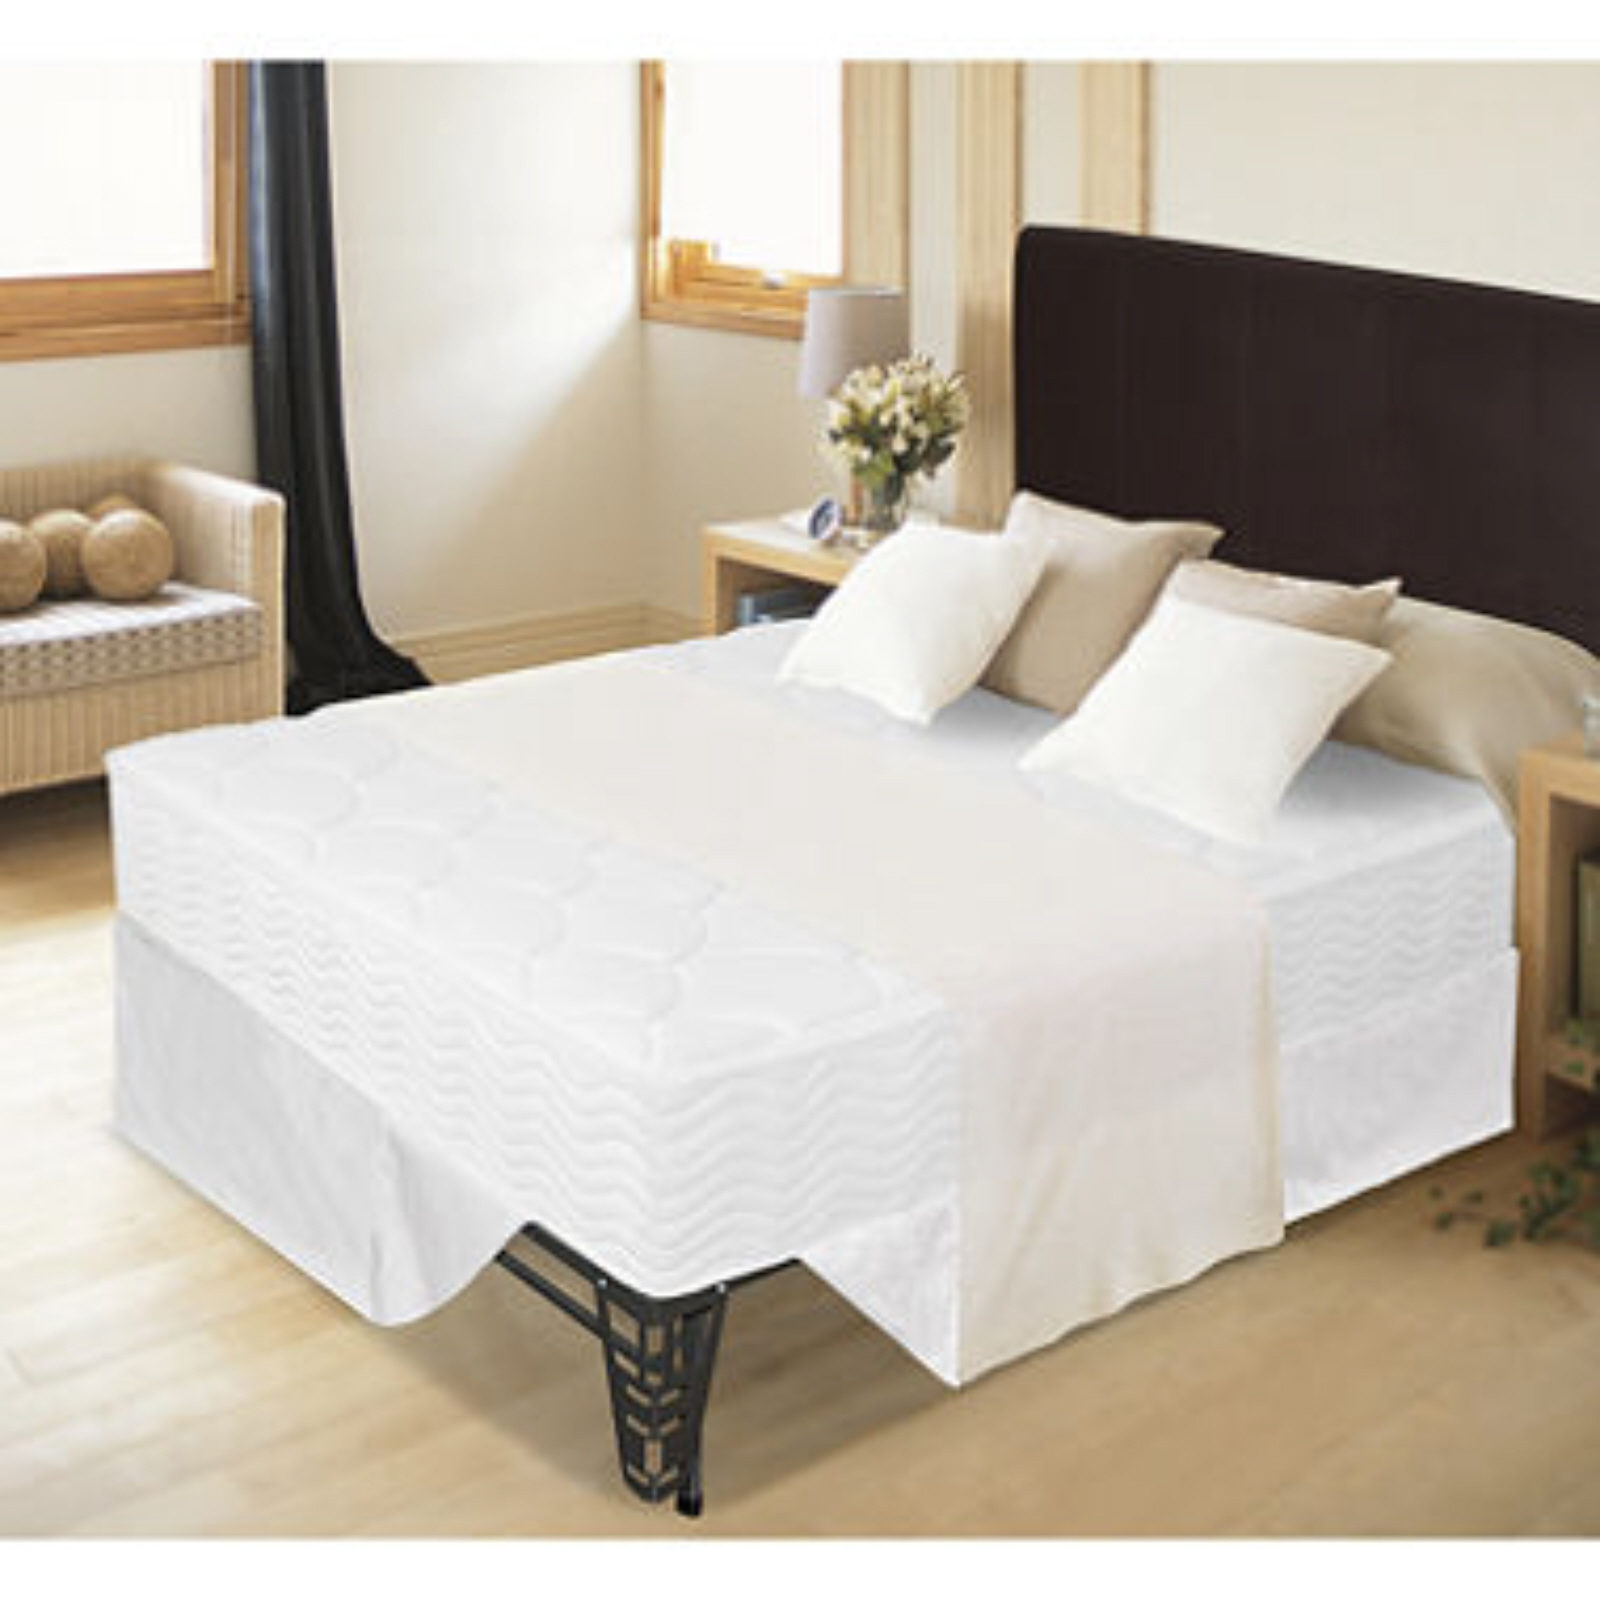 8 tight top spring mattress bed frame set twin size for Twin size bed frame and mattress set